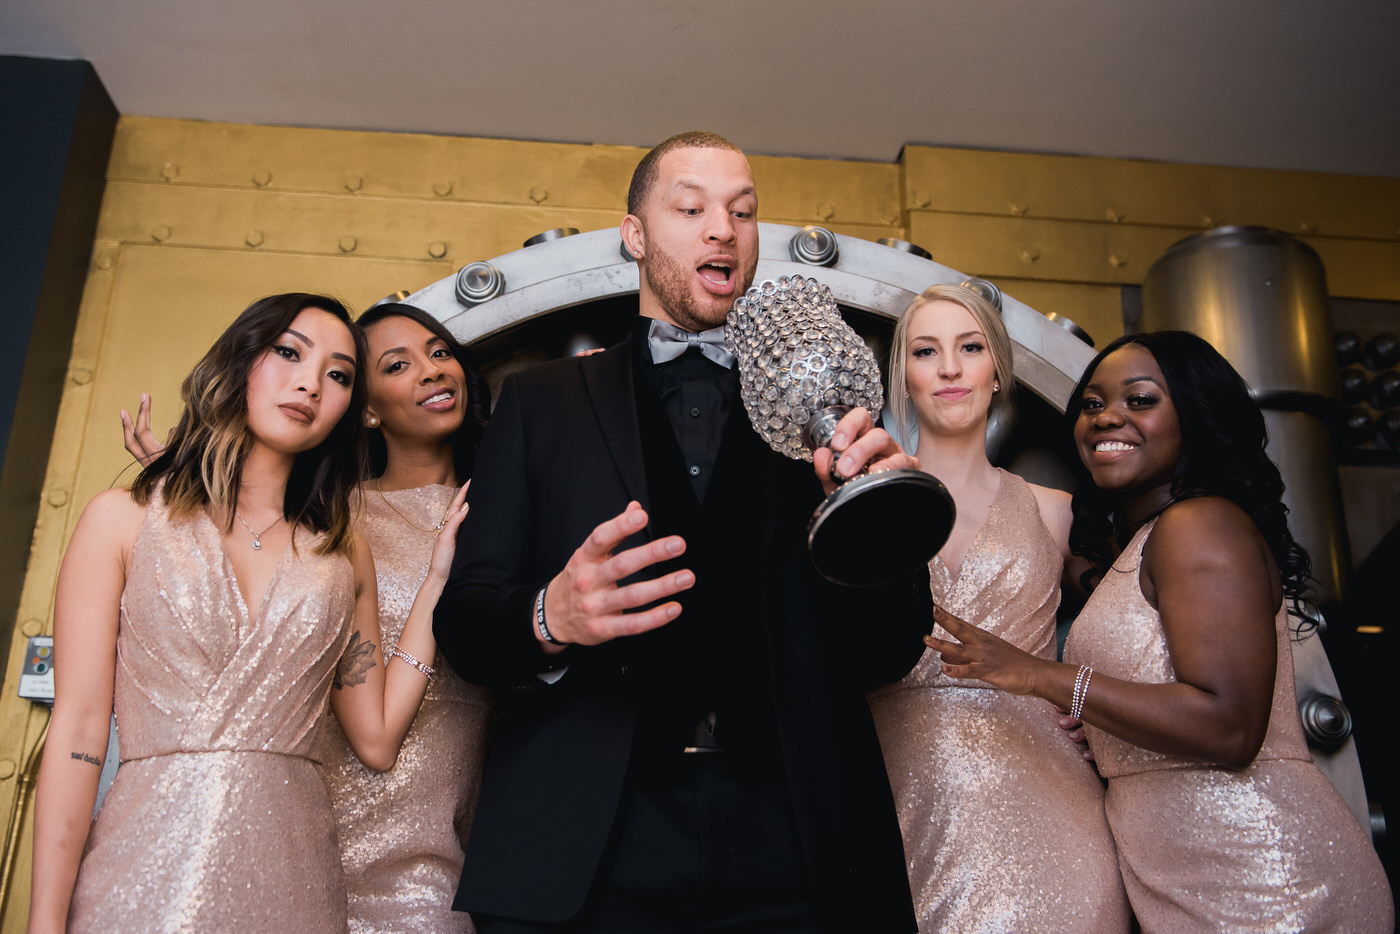 Groom posing with bridesmaids at One King West hotel wedding